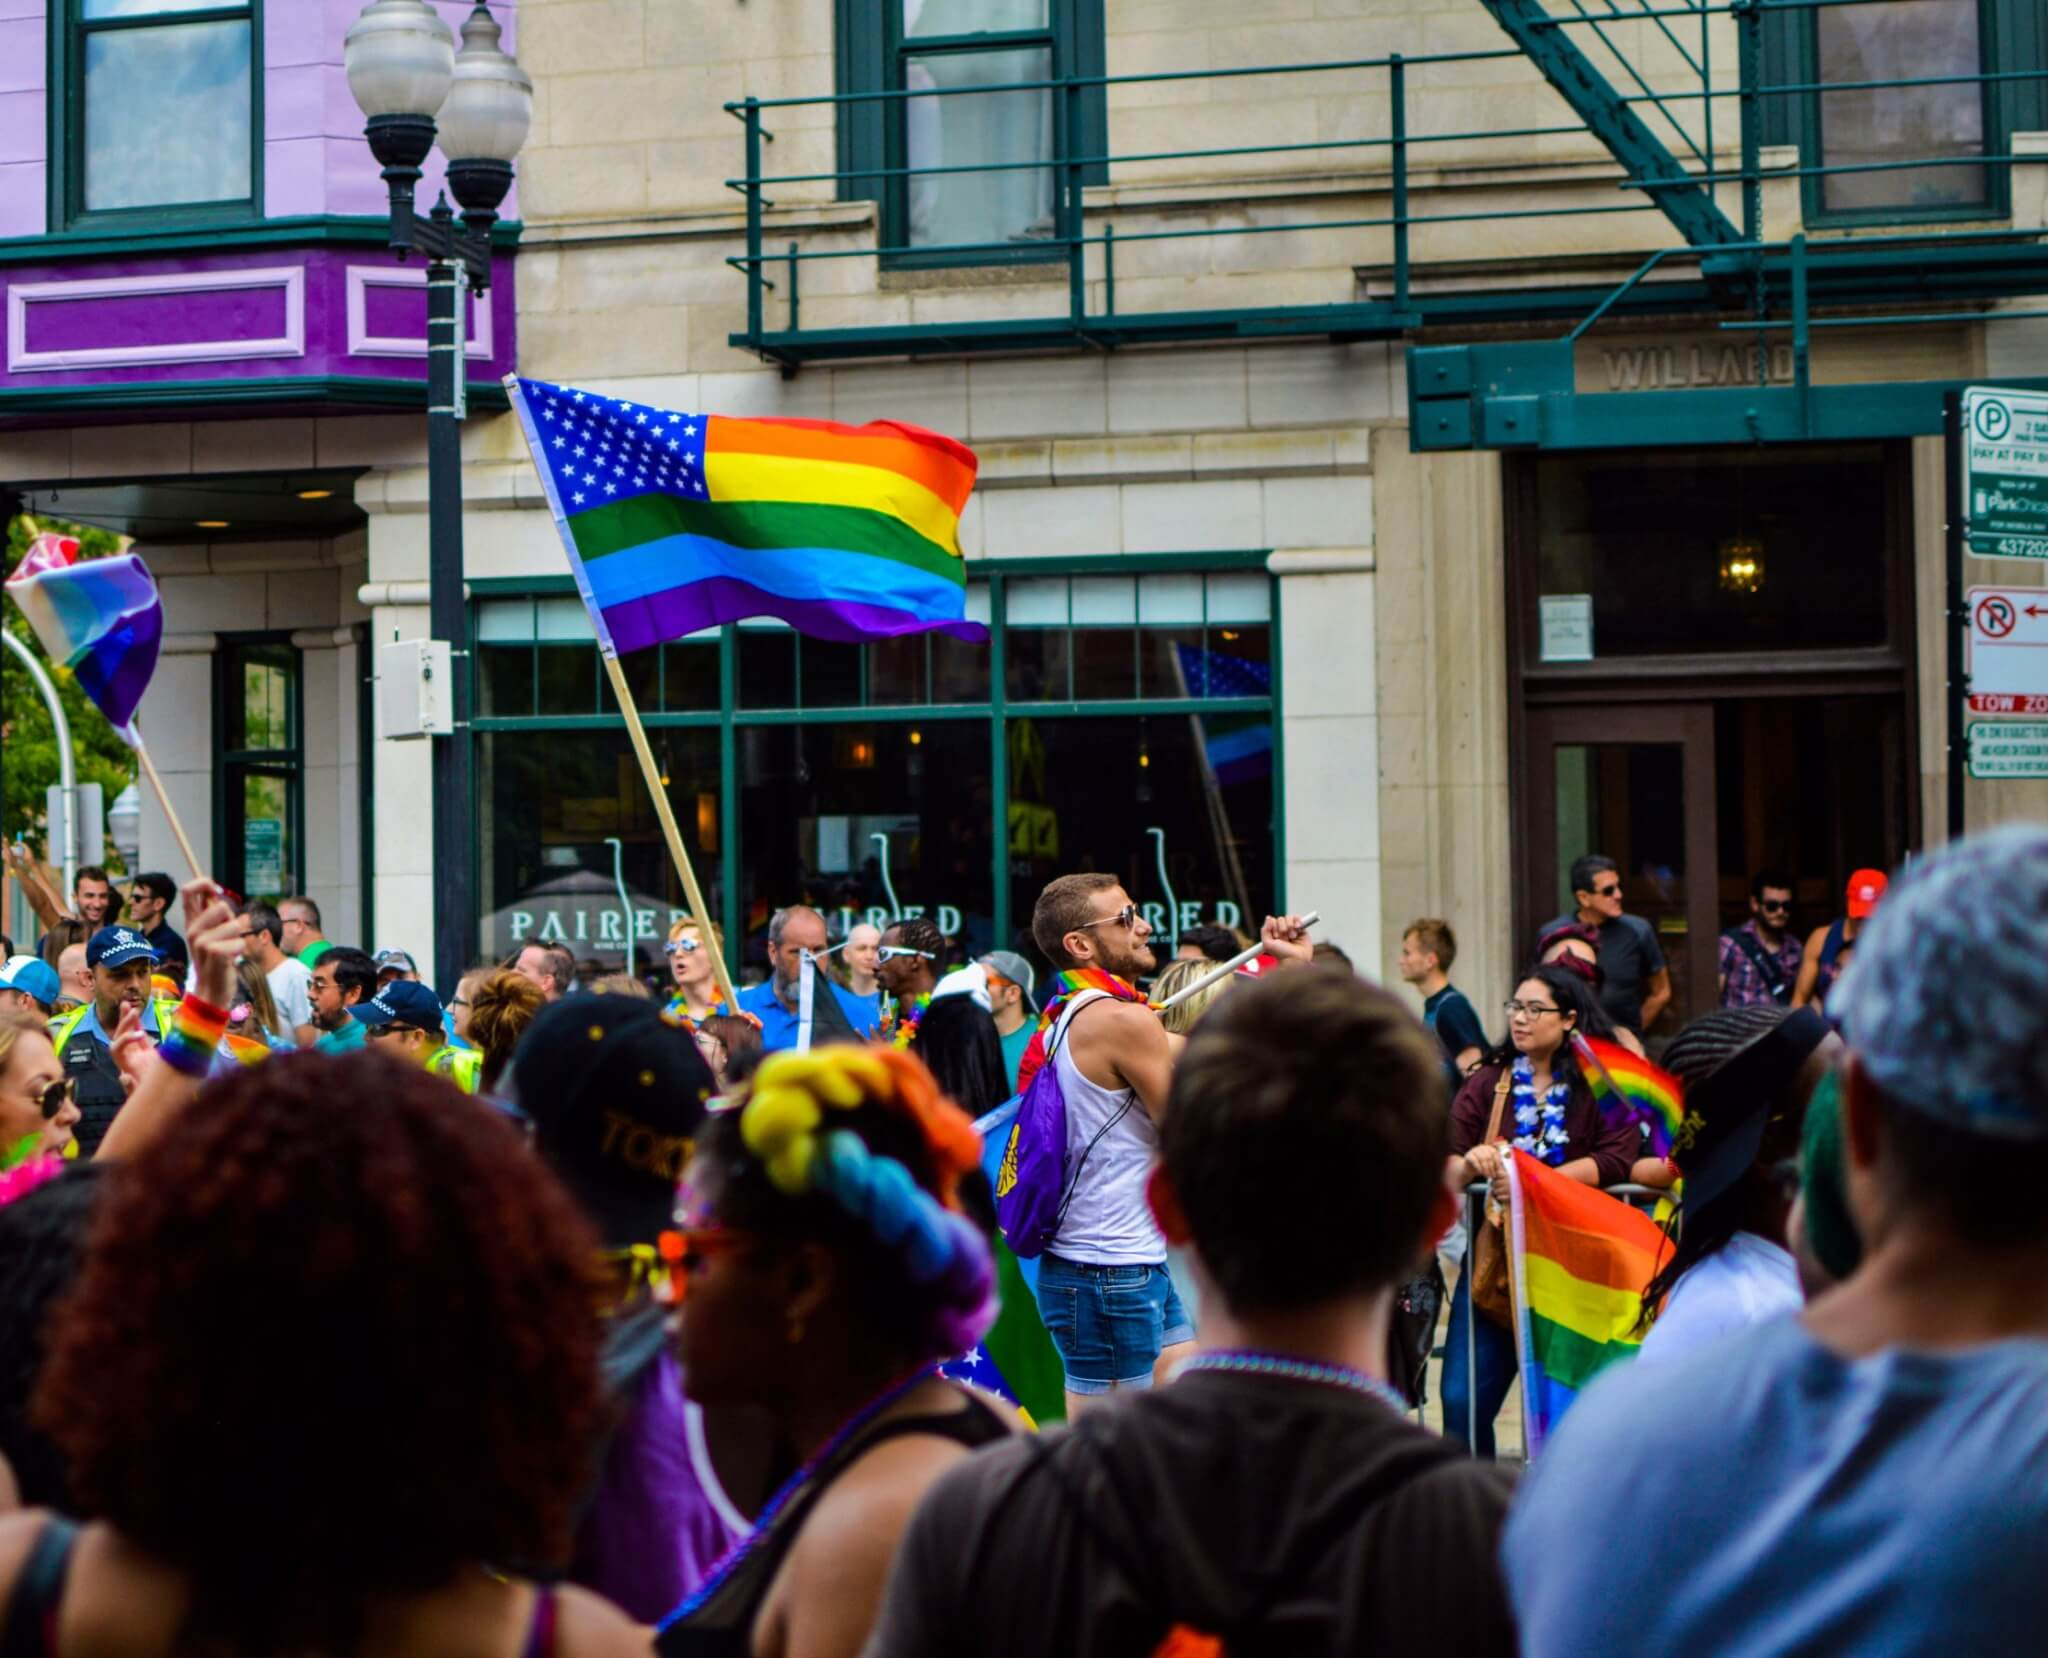 People waving a rainbow flag at ceremony.